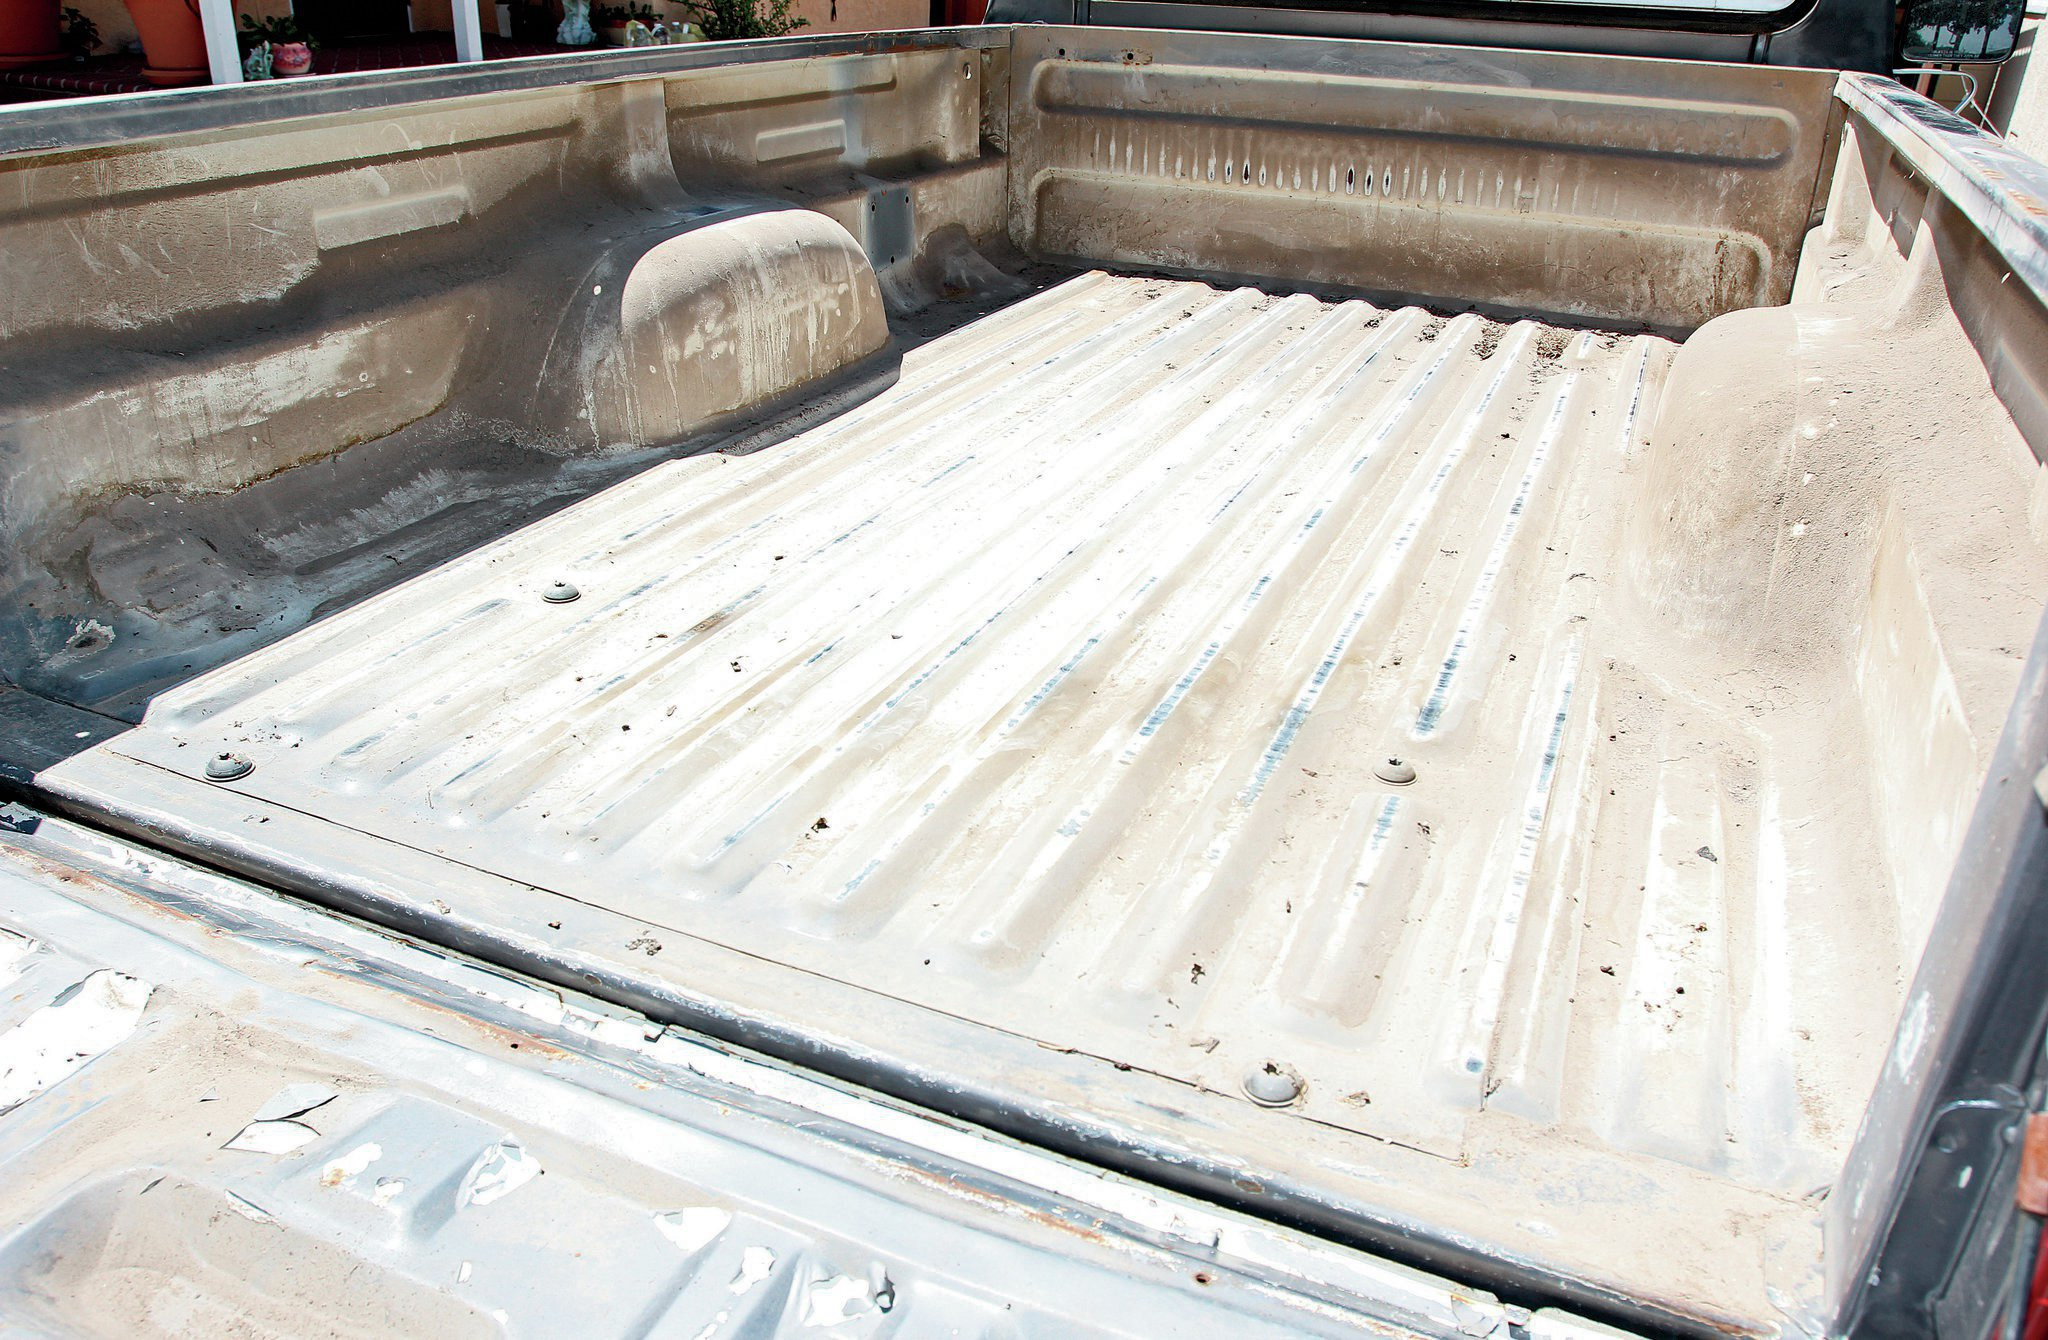 Best ideas about DIY Bed Liner Reviews . Save or Pin Herculiner DIY Roll on Bedliner Kit How to & Image Now.